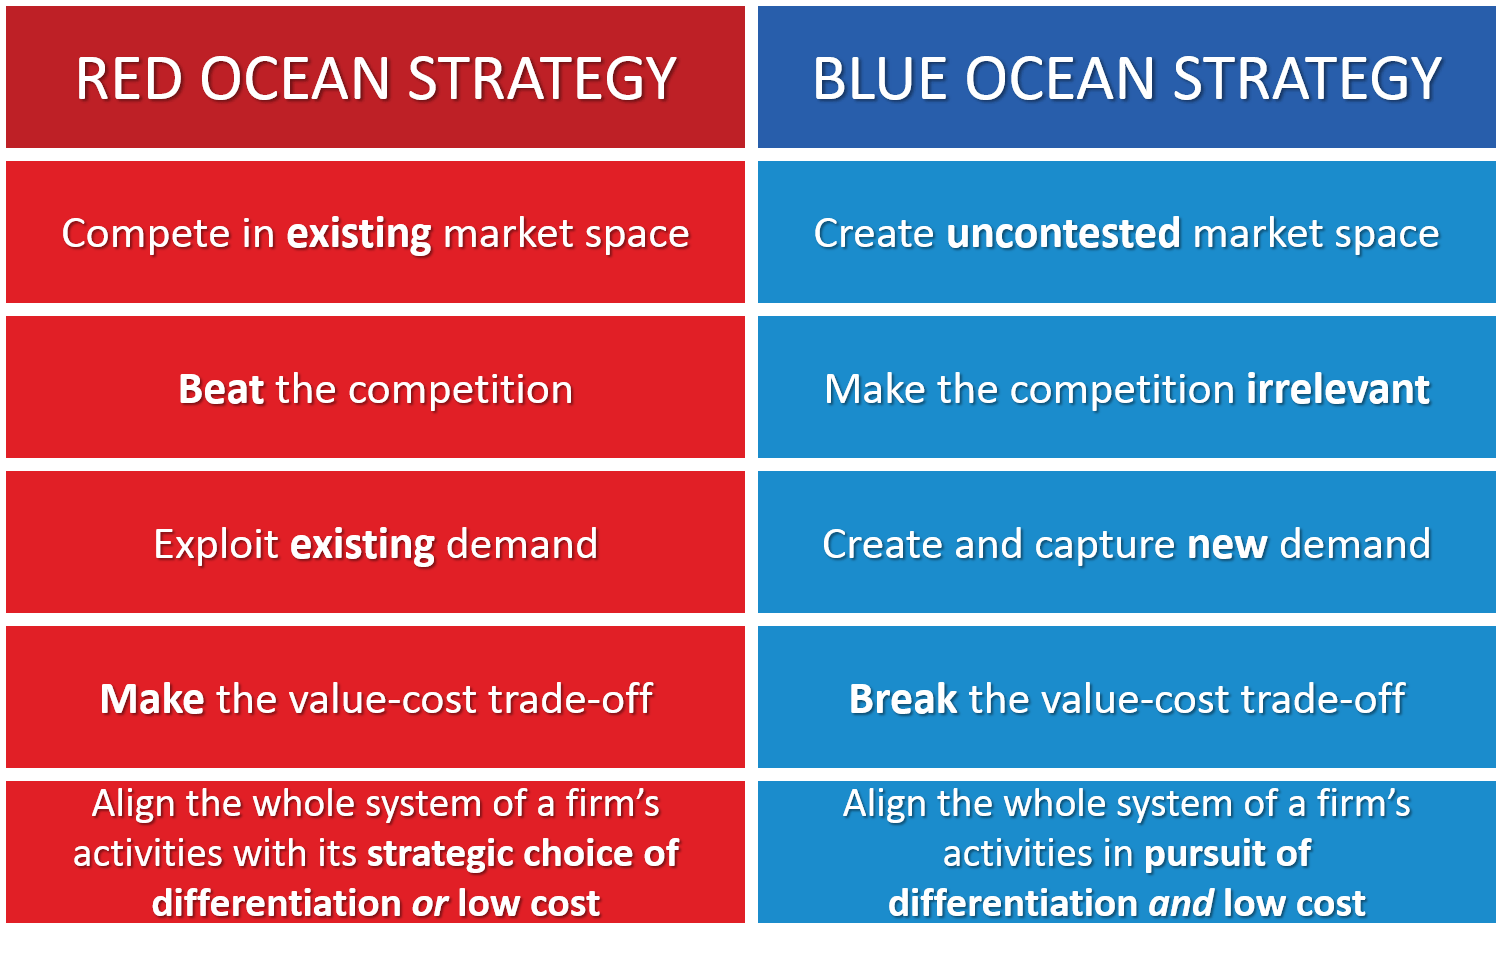 Blue Ocean Strategy EXPLAINED with EXAMPLES | B2U